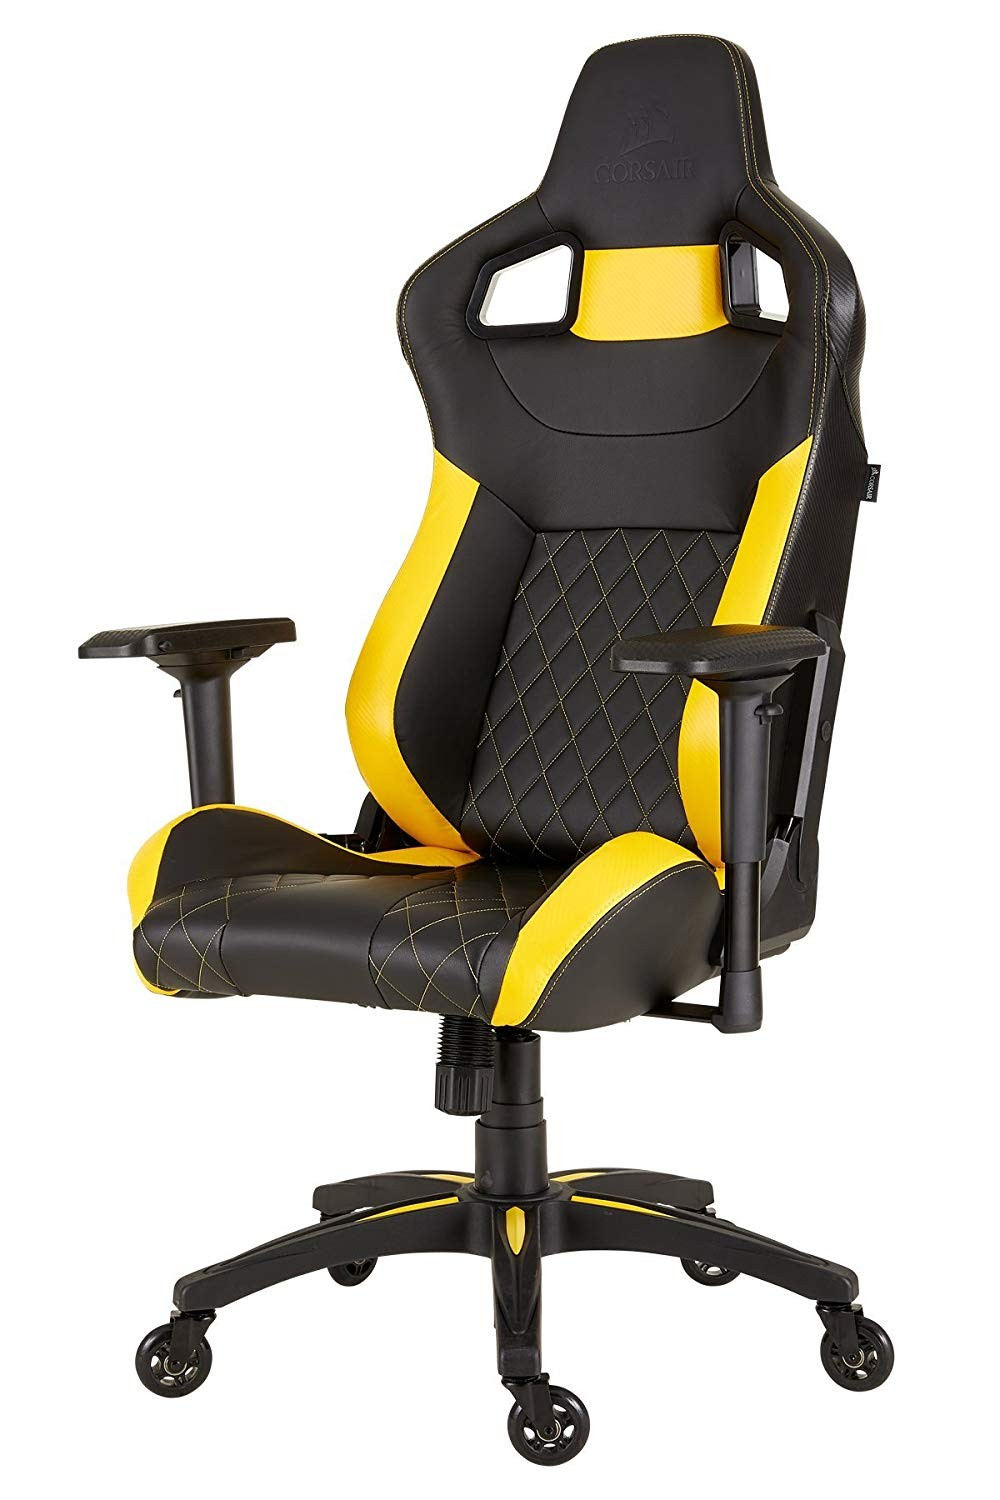 Desk Chairs Corsair Cf 9010015 Gaming Chair Racing